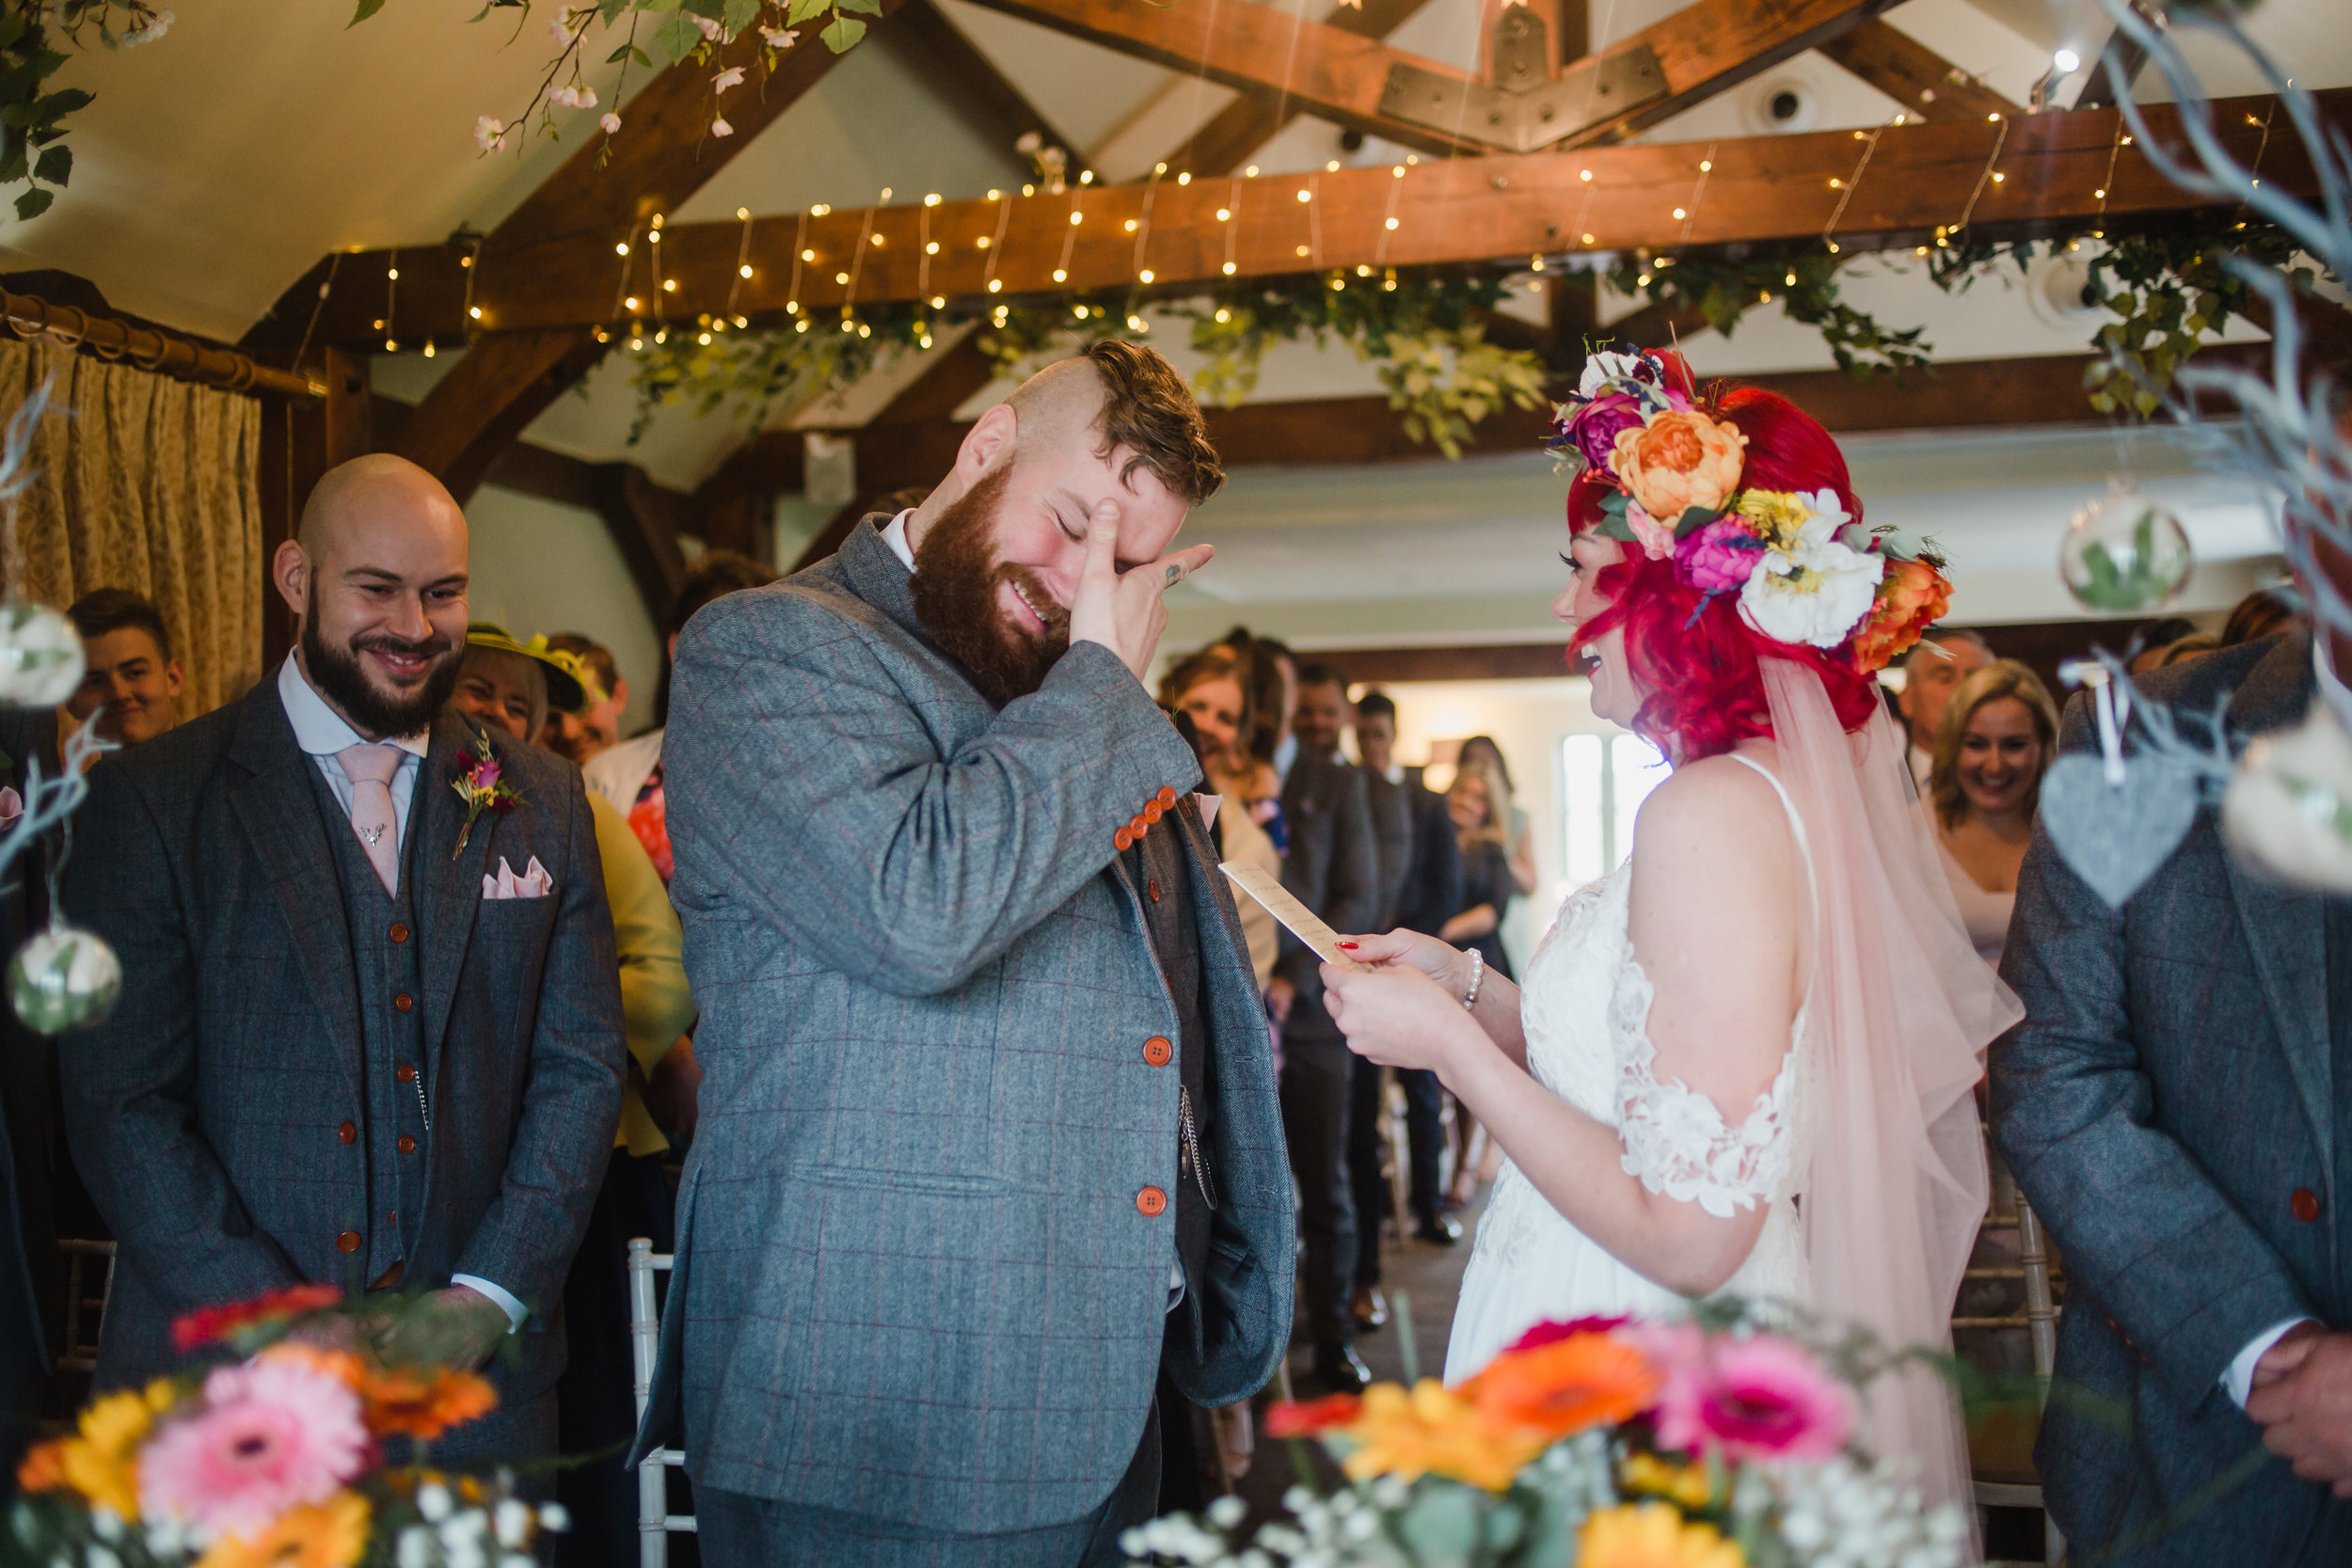 A groom cries during a wedding ceremony at the compasses at pattiswick